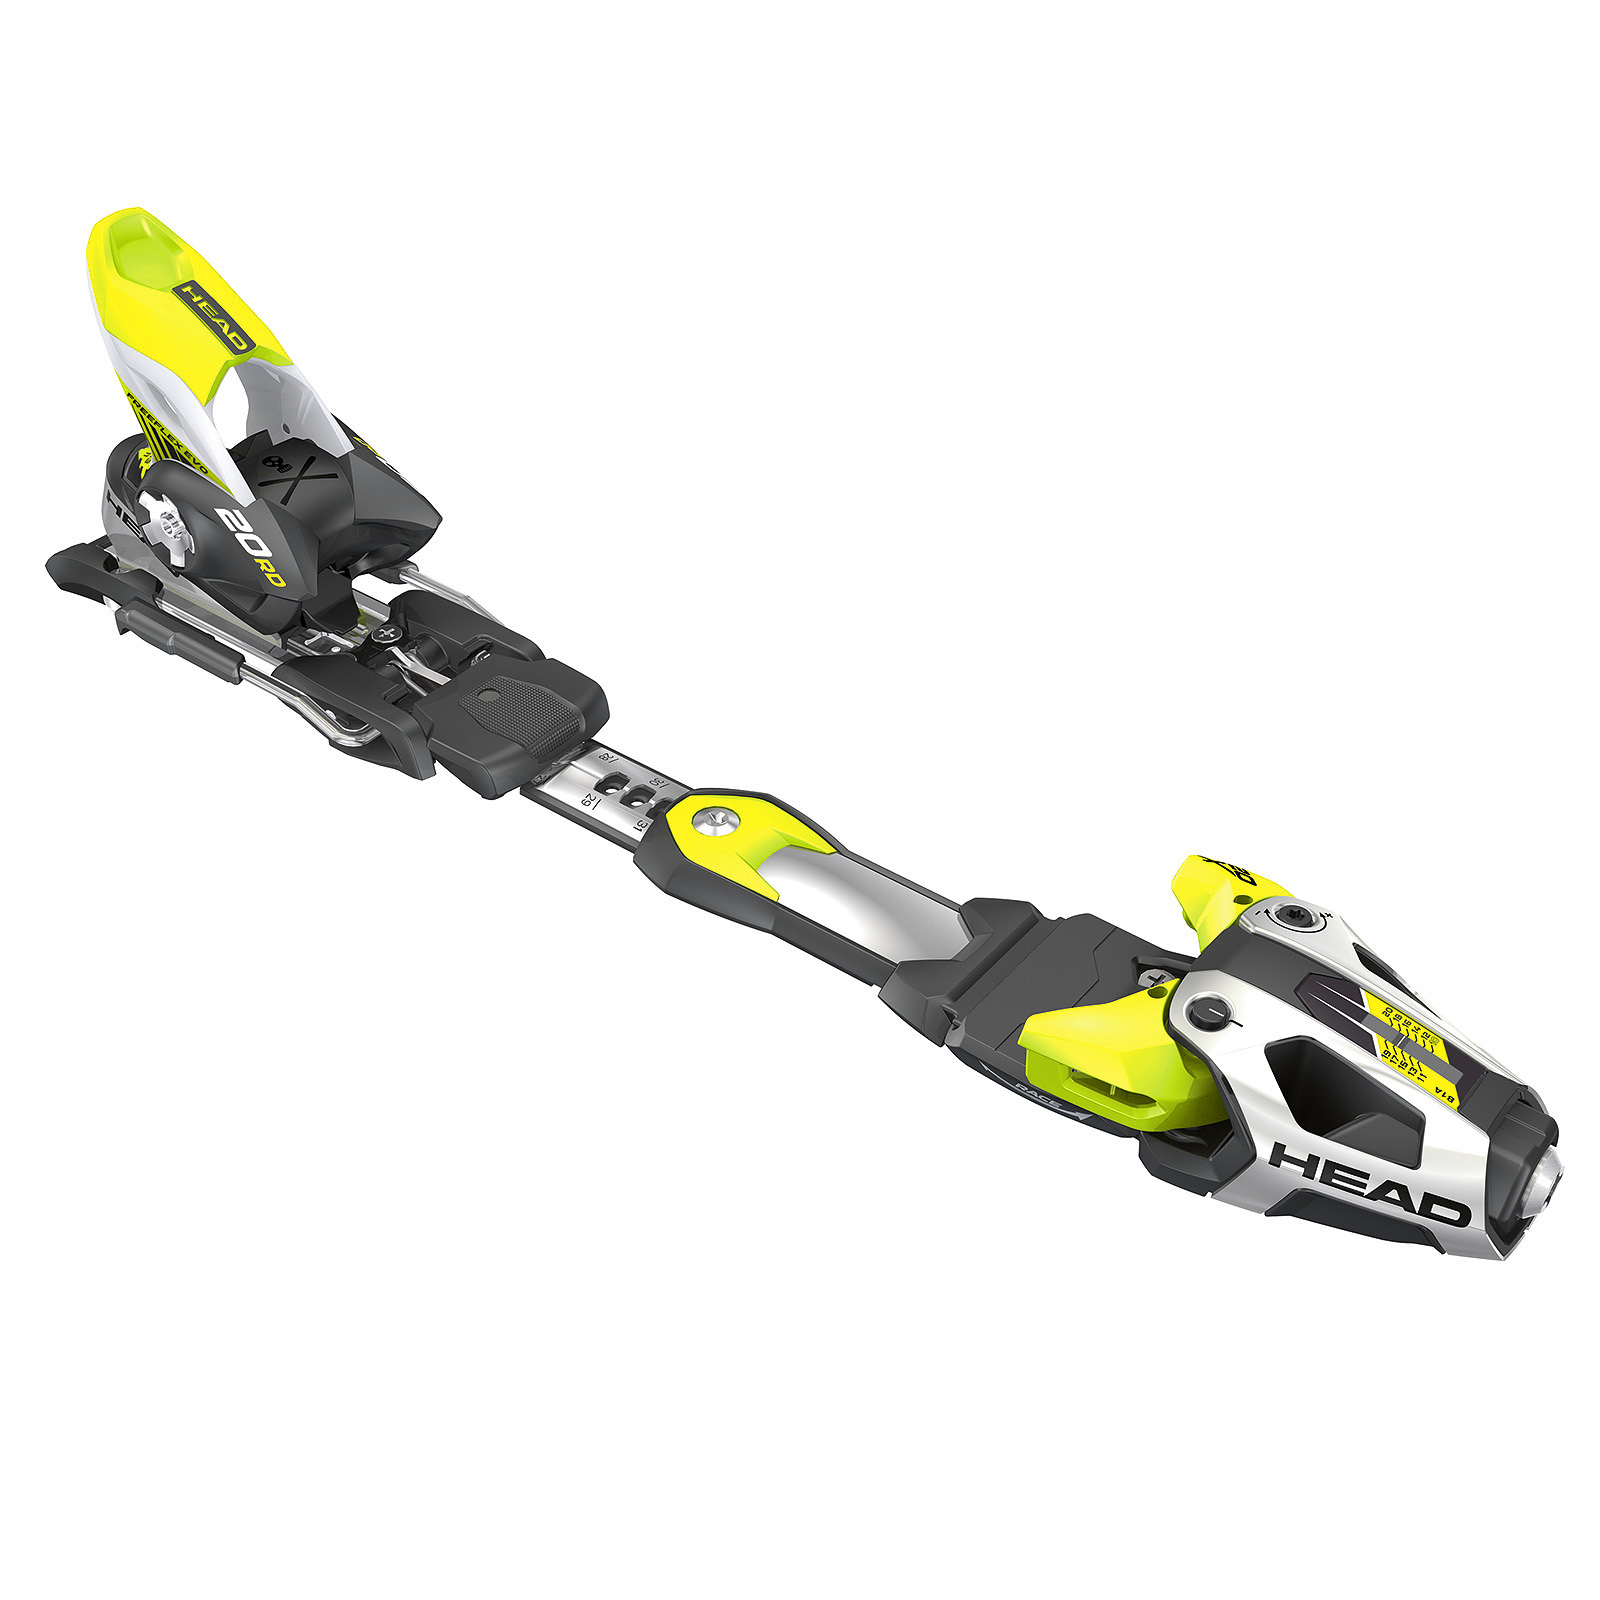 100600_freeflex_evo_20_x_rd_brake_85_white_black_fl_yellow_sideright.jpg